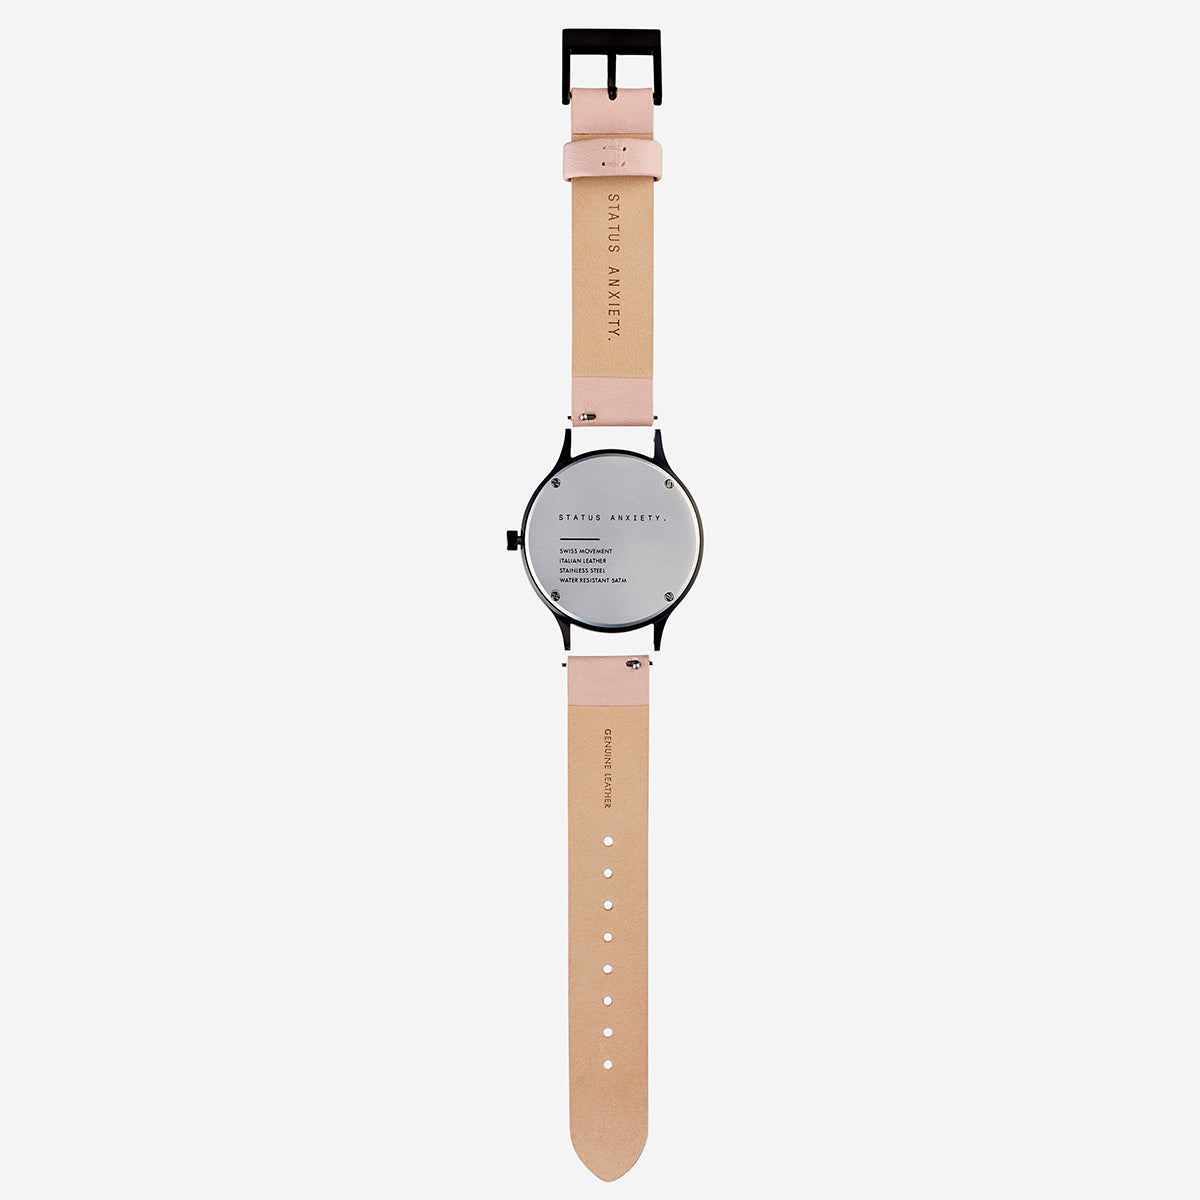 Status Anxiety Inertia Leather Unisex Watch Strap (Only)- Blush Strap/Matte Black Buckle